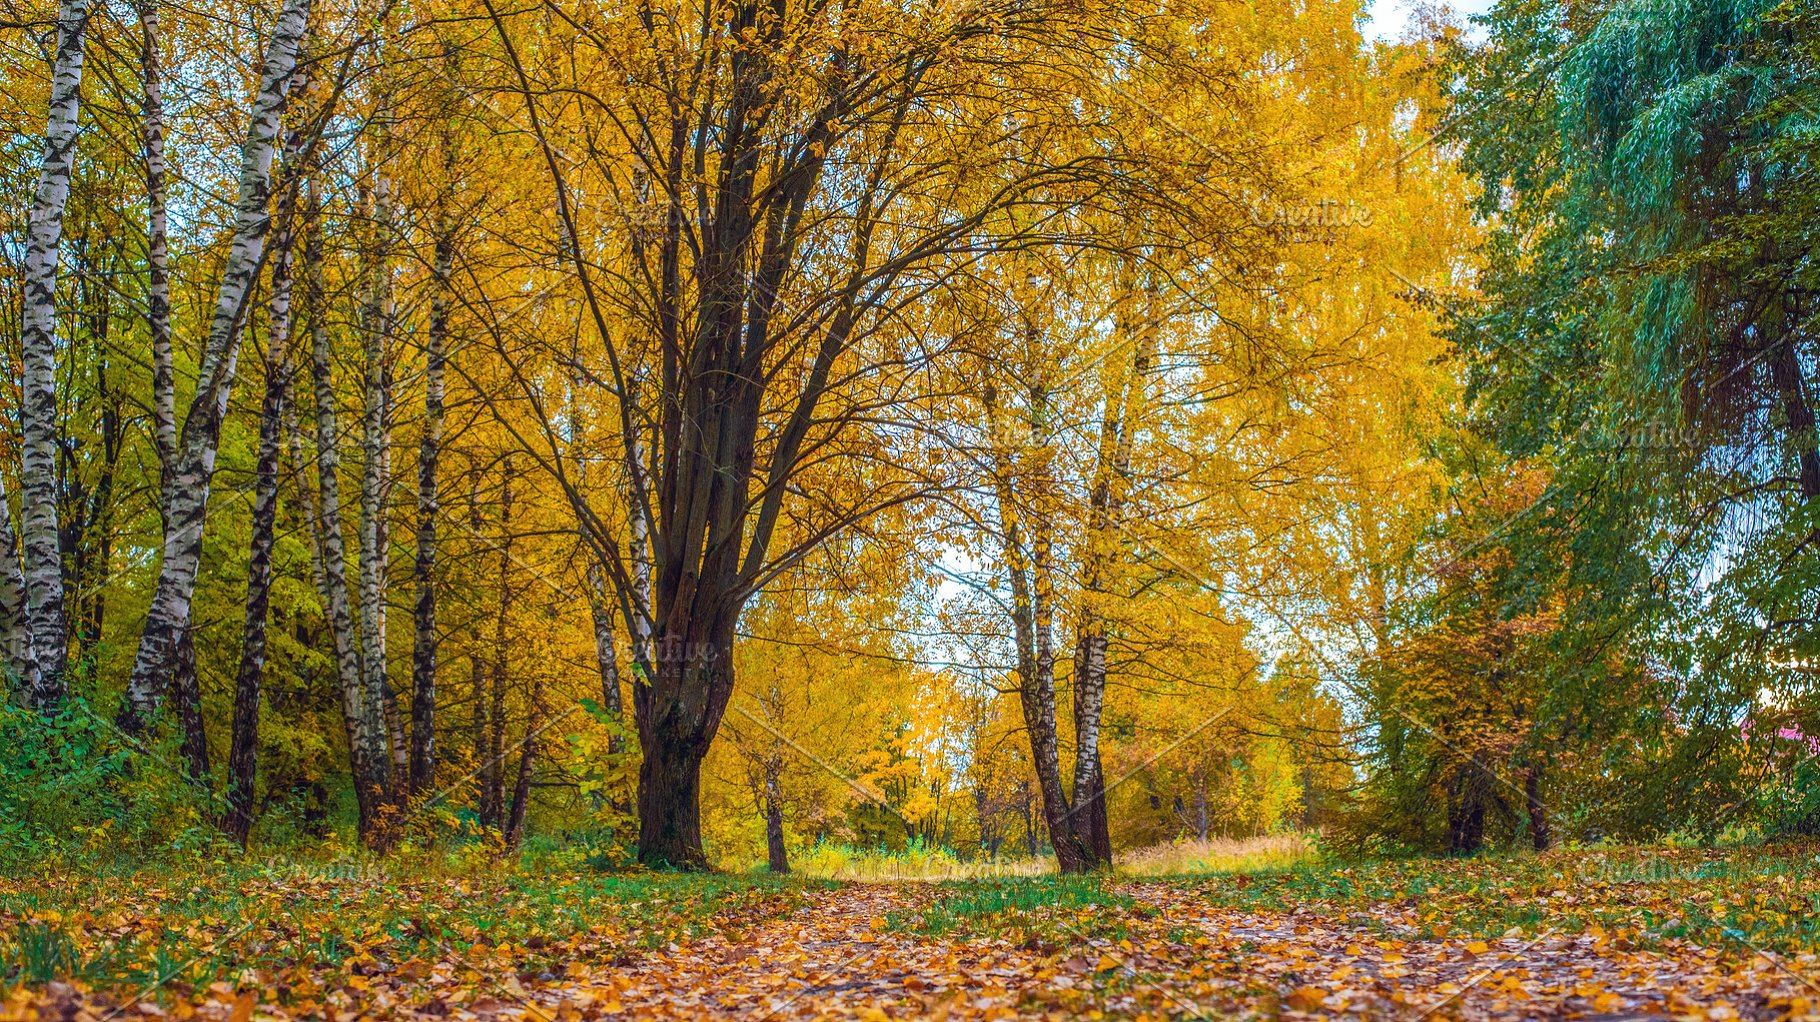 Autumn Forest Beautiful Background Park In Bright Leaves Road In